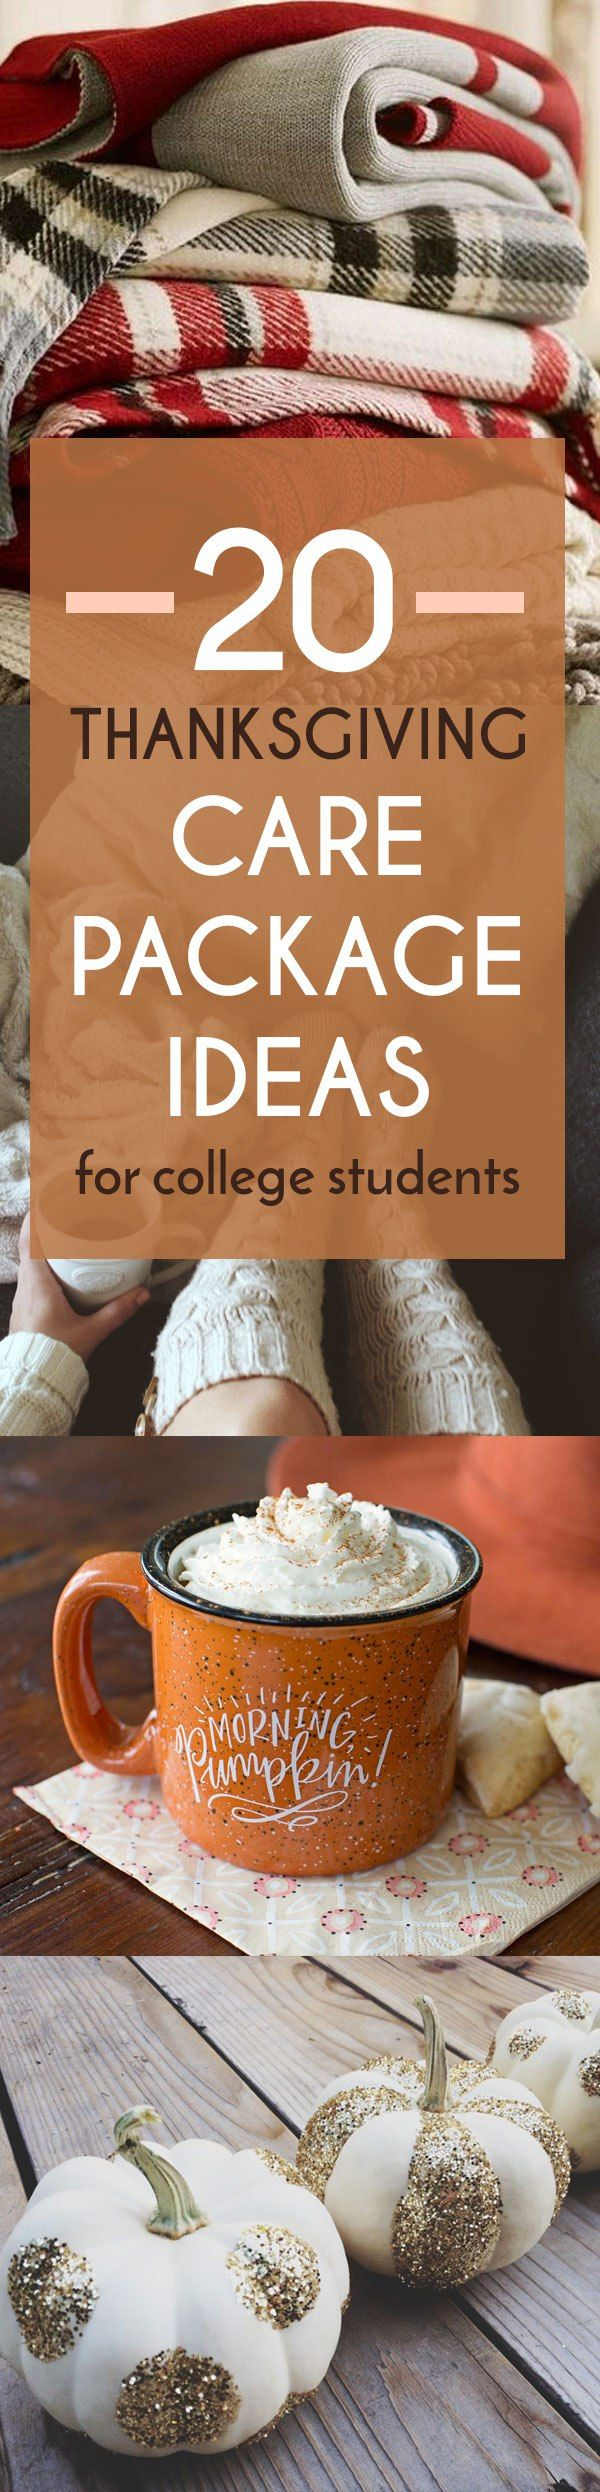 20 Festive Thanksgiving Care Package Ideas For College Students – SOCIETY19